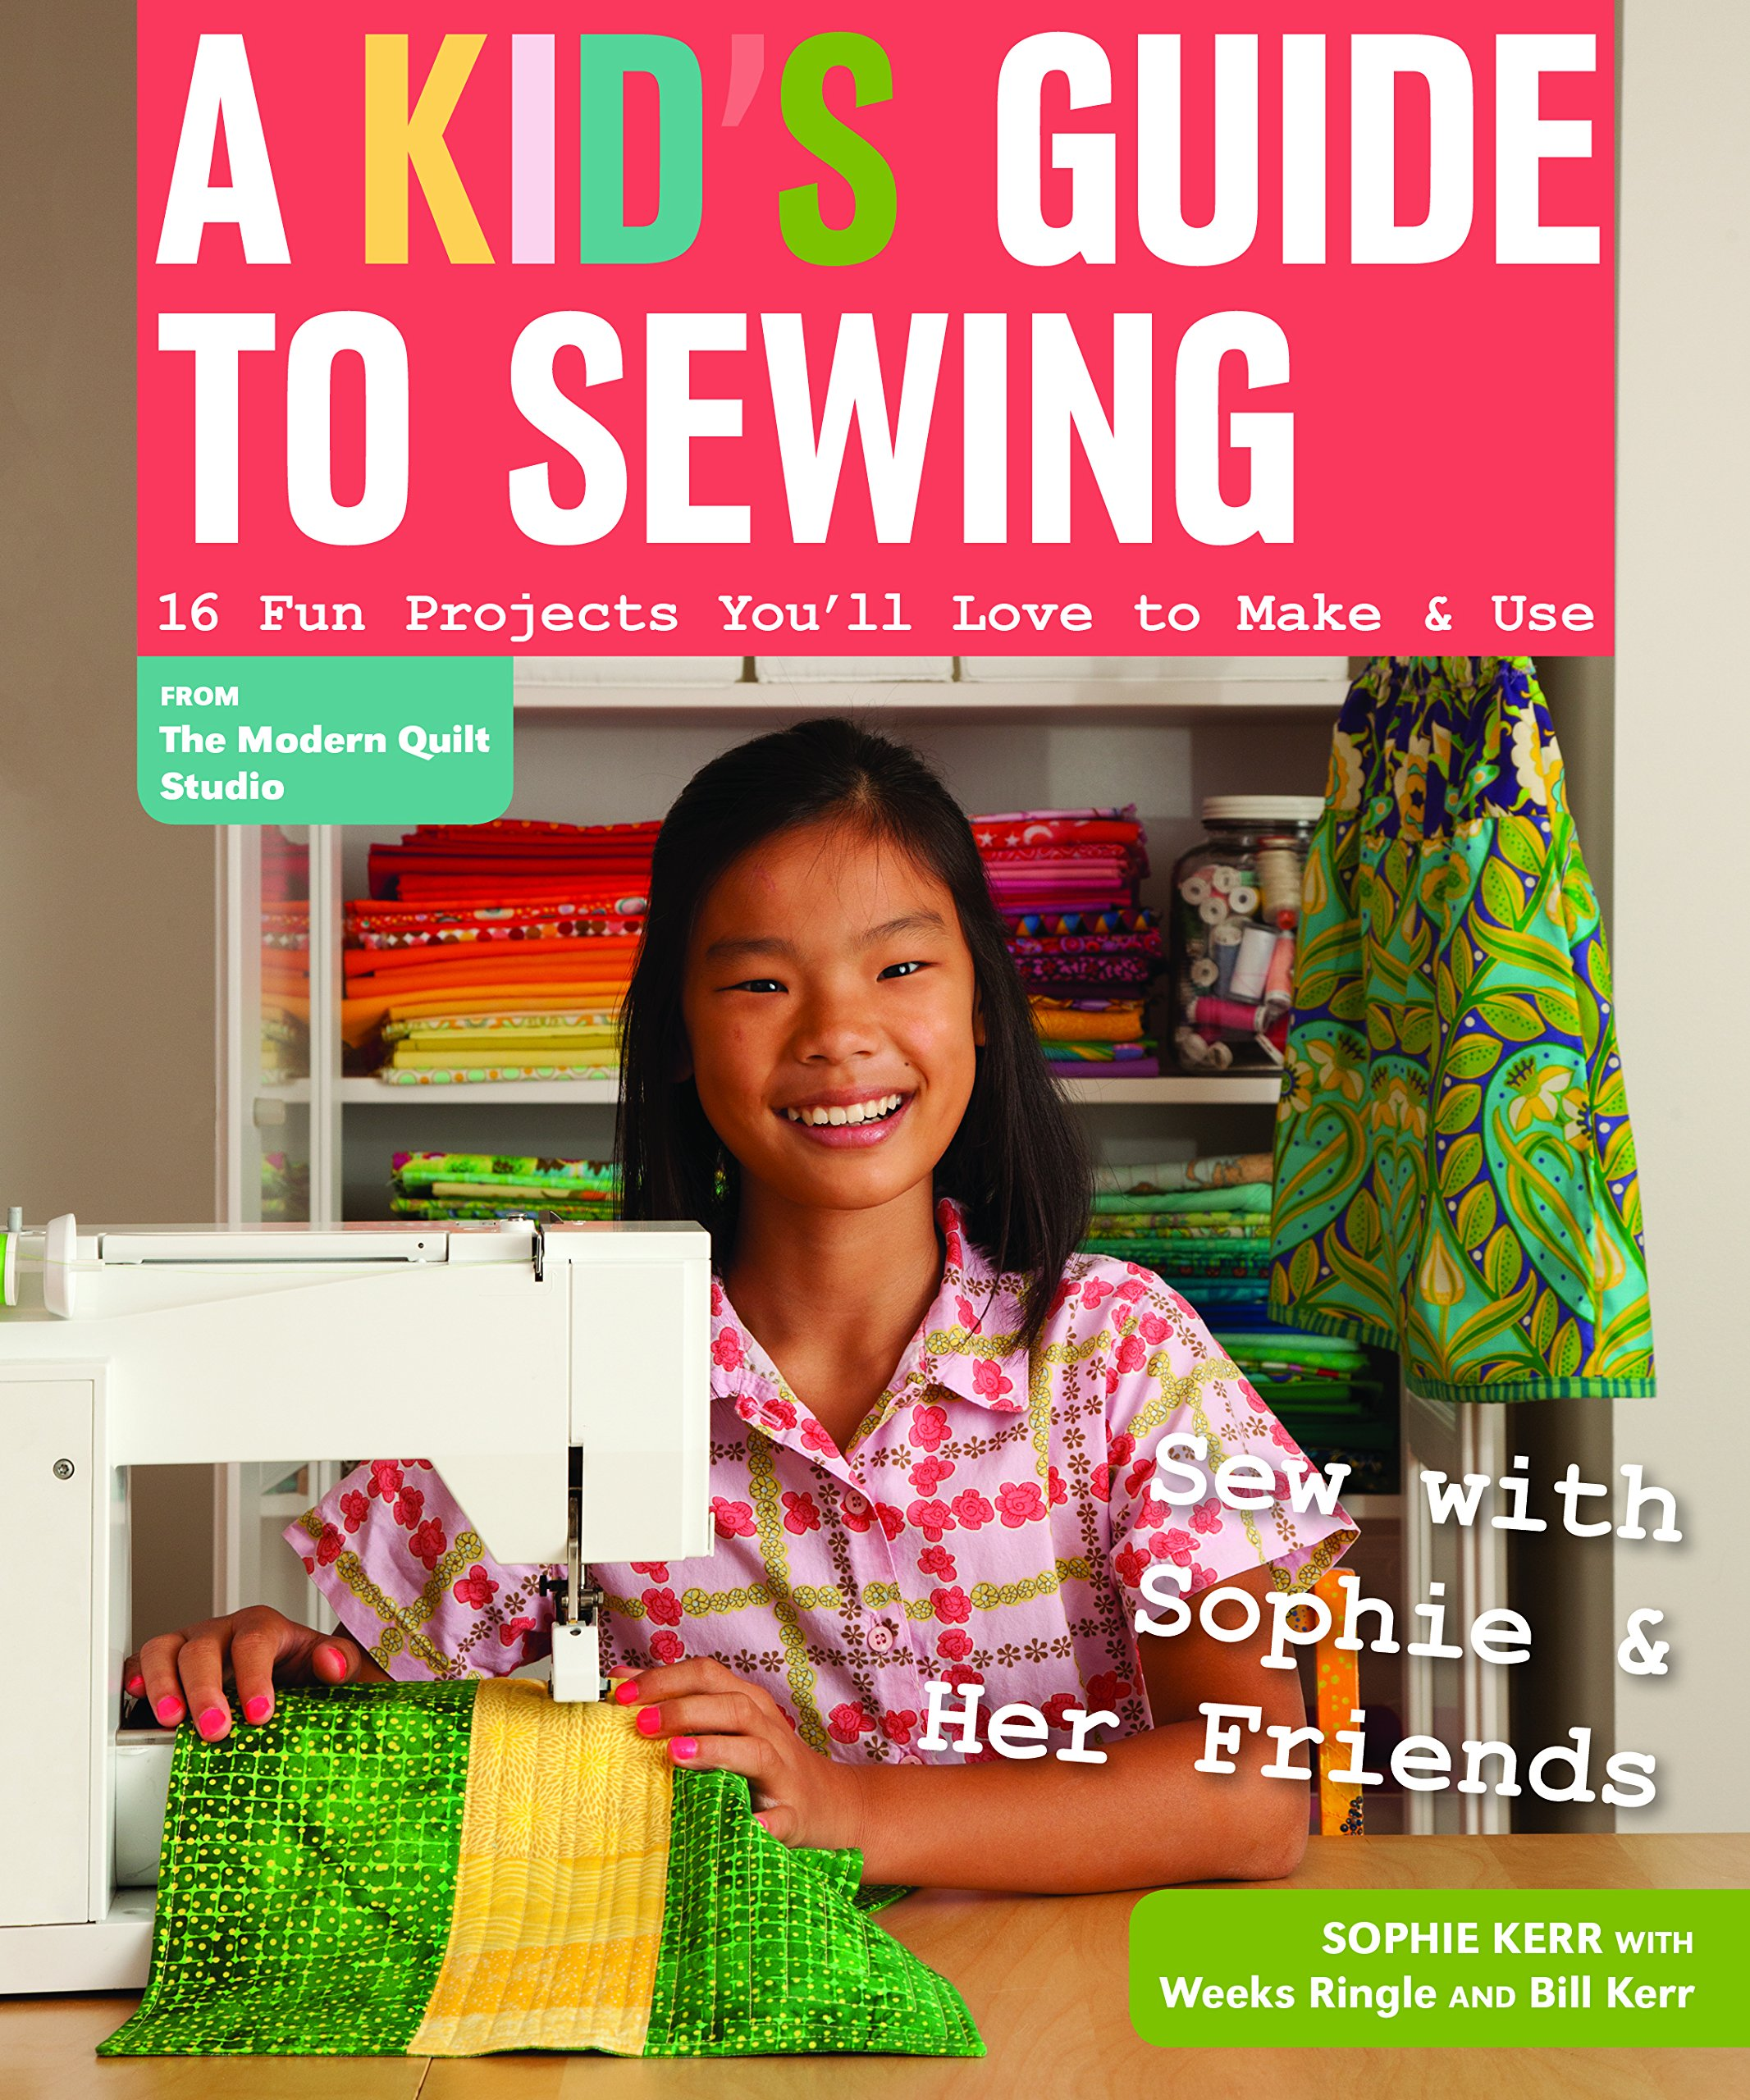 A kids guide to sewing learn to sew with sophie her friends a kids guide to sewing learn to sew with sophie her friends 16 fun projects youll love to make use sophie kerr weeks ringle jeuxipadfo Choice Image